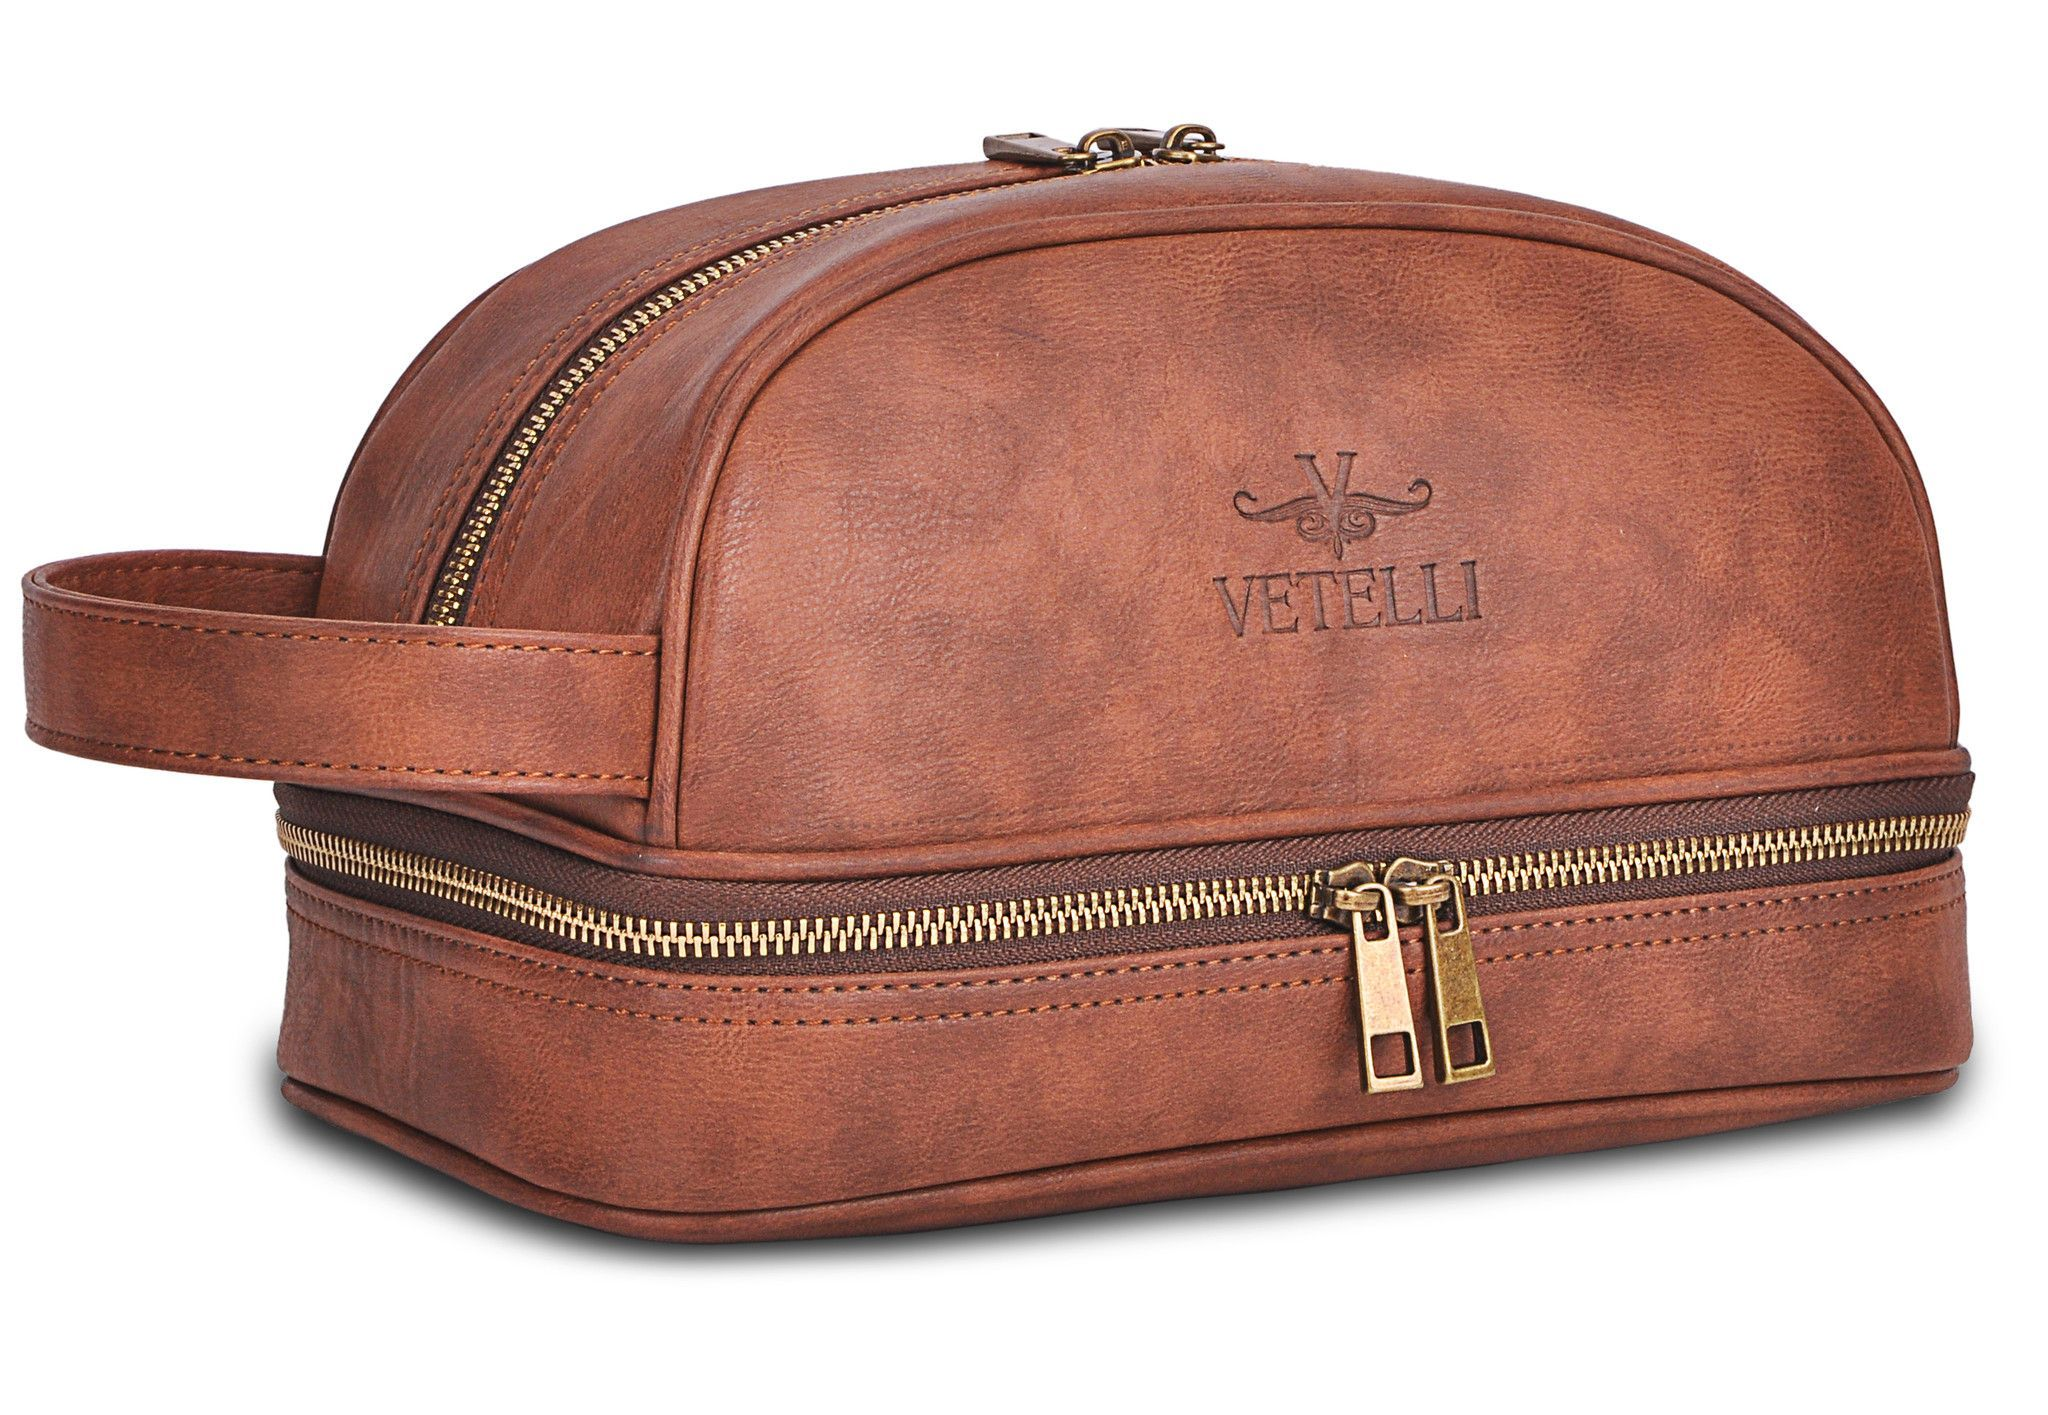 Classic Leather Toiletry Bag